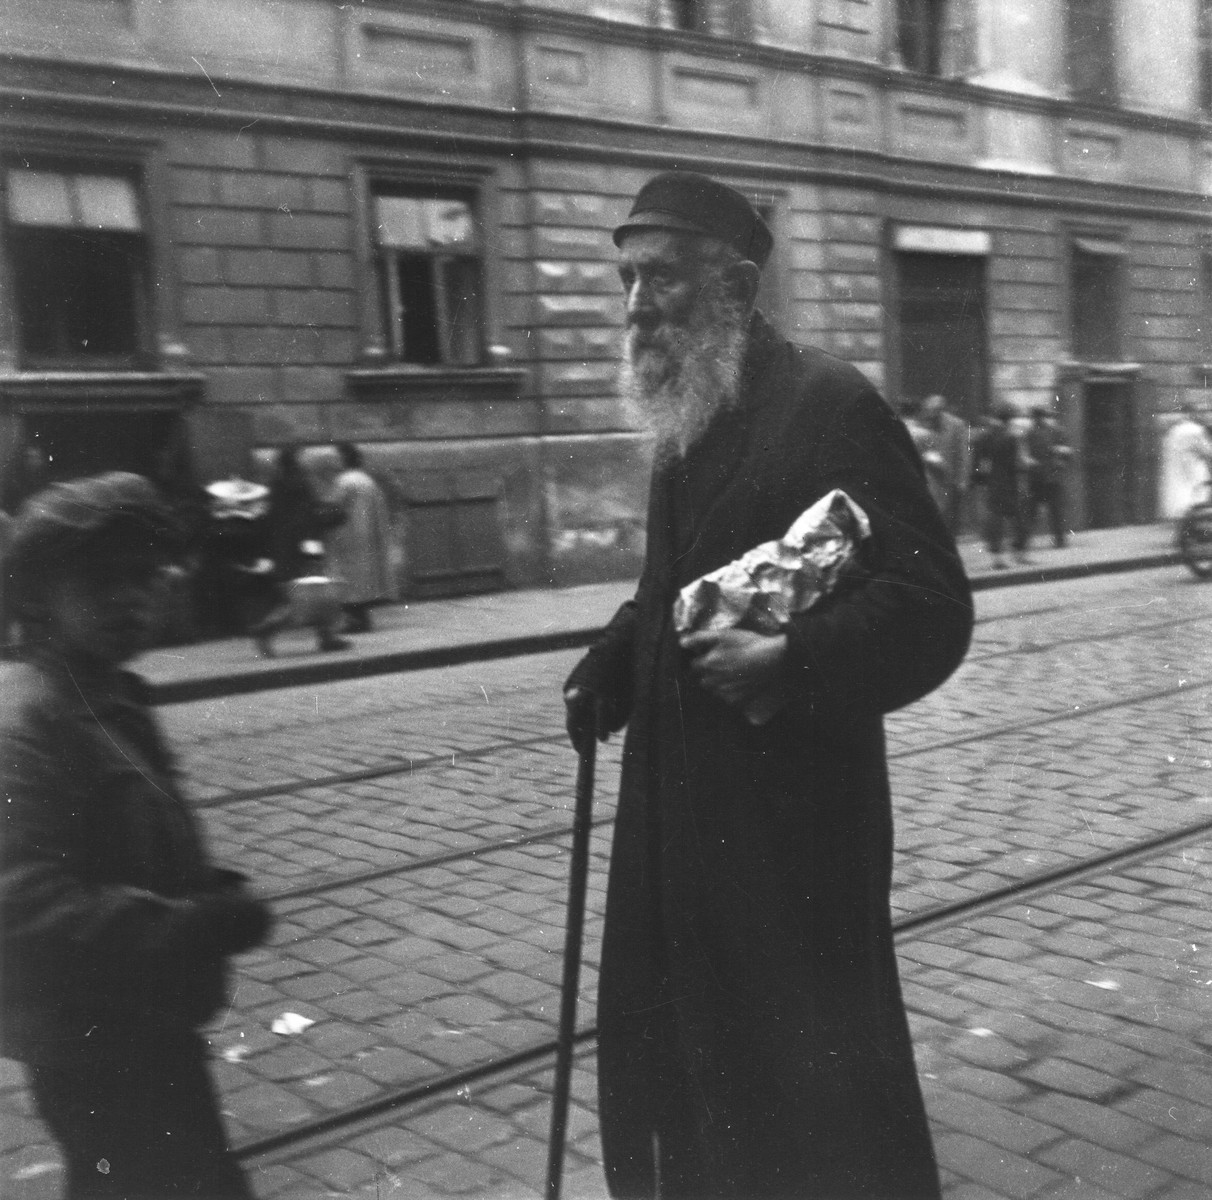 """An elderly Jew holding a package and a cane walks along a commercial street in the Warsaw ghetto.    Joest's original caption reads: """"It struck me like an image out of the Old Testament--this old man with a small bundle in his arm, walking towards certain death."""""""